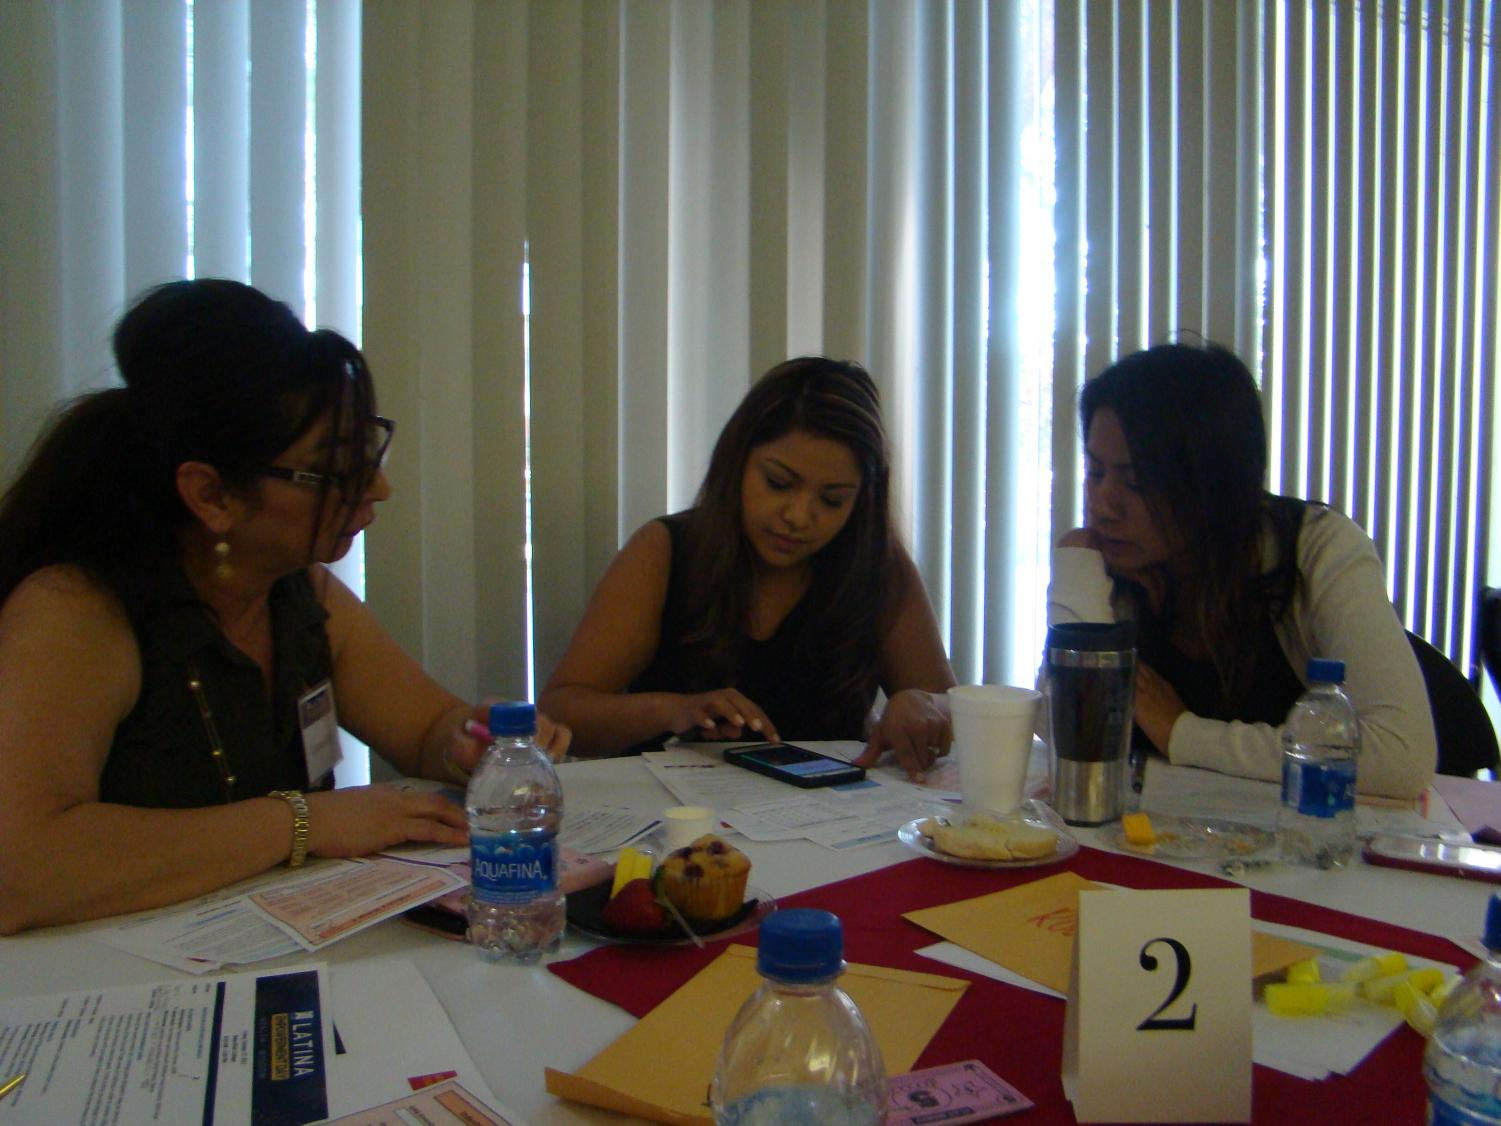 From left to right: Carmen Ruiz, Jhoana Granados, and Briana Rodriguez play a bidding game.